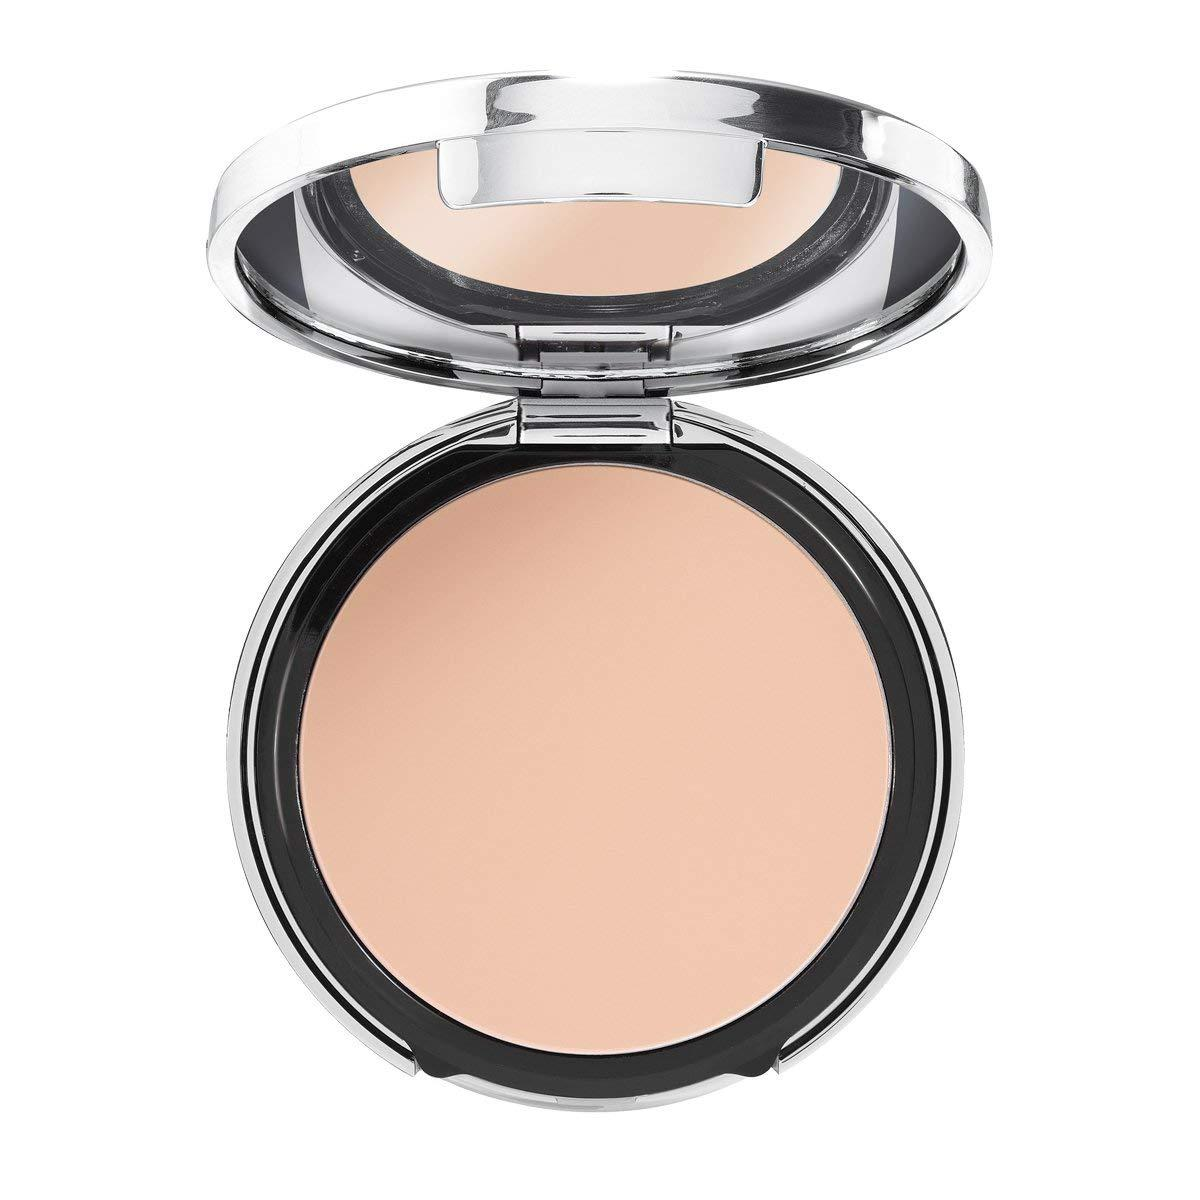 Pupa Extreme Matt Powder Foundation 003 Rose